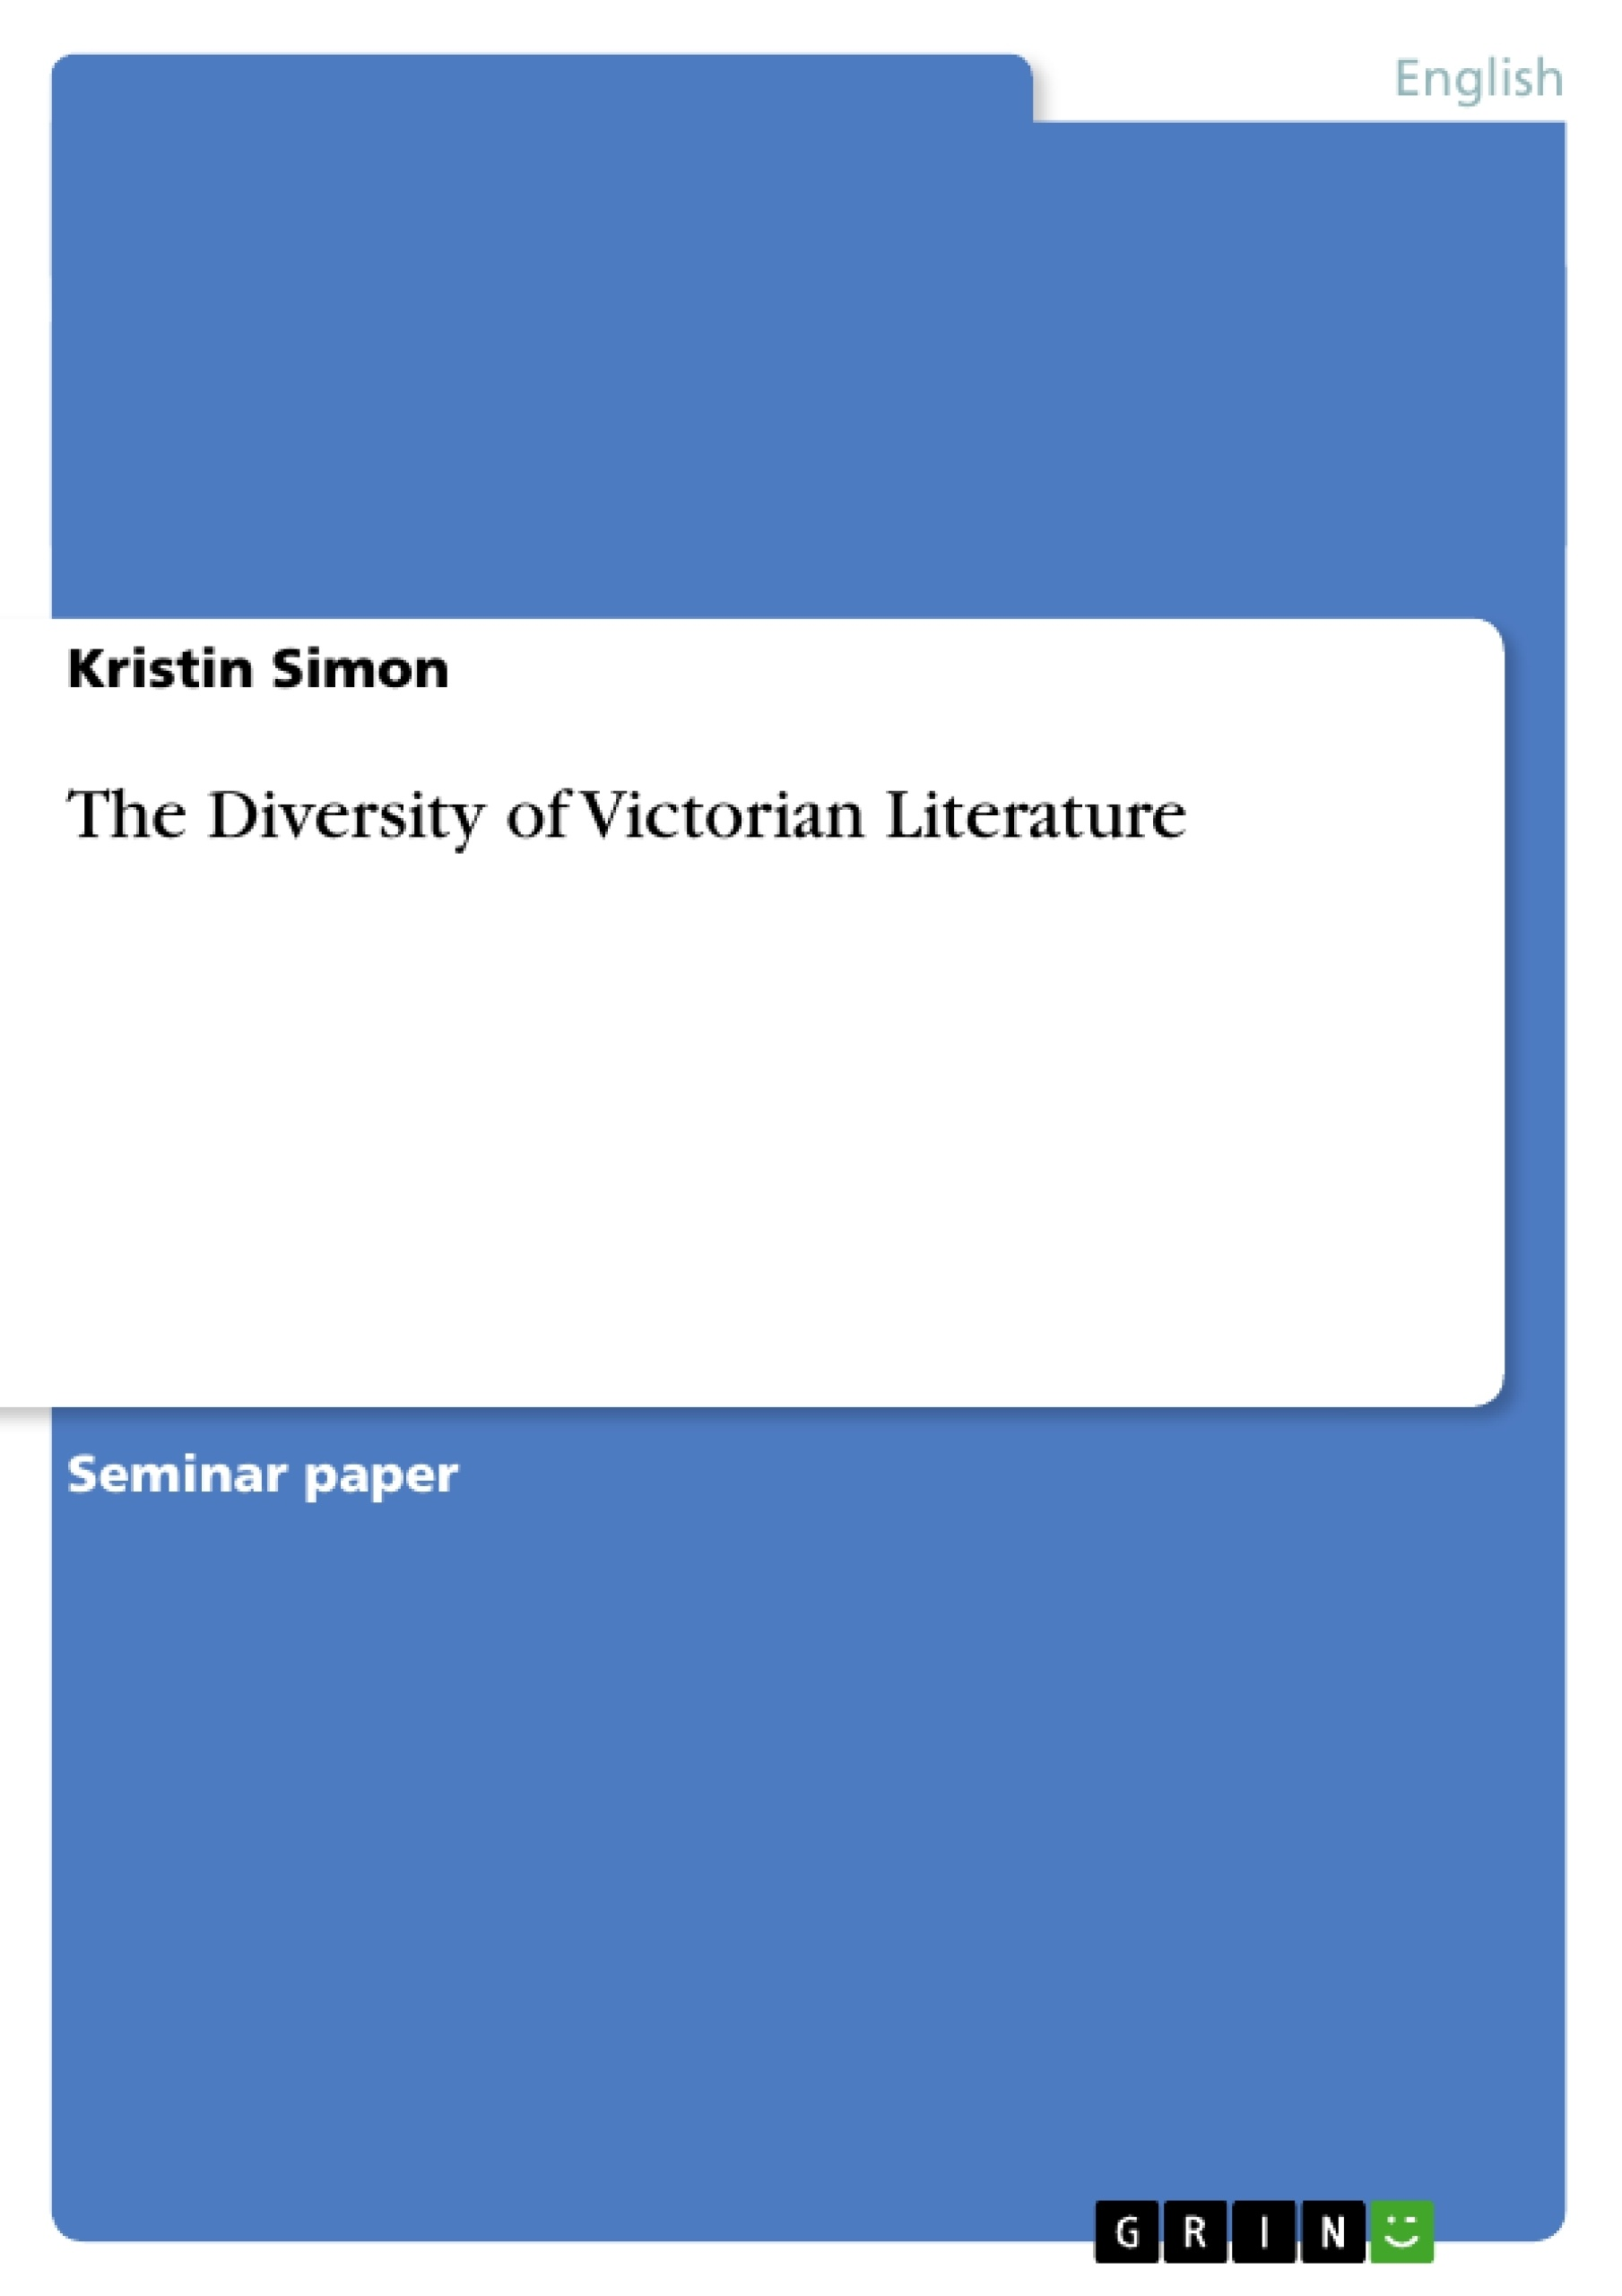 Title: The Diversity of Victorian Literature